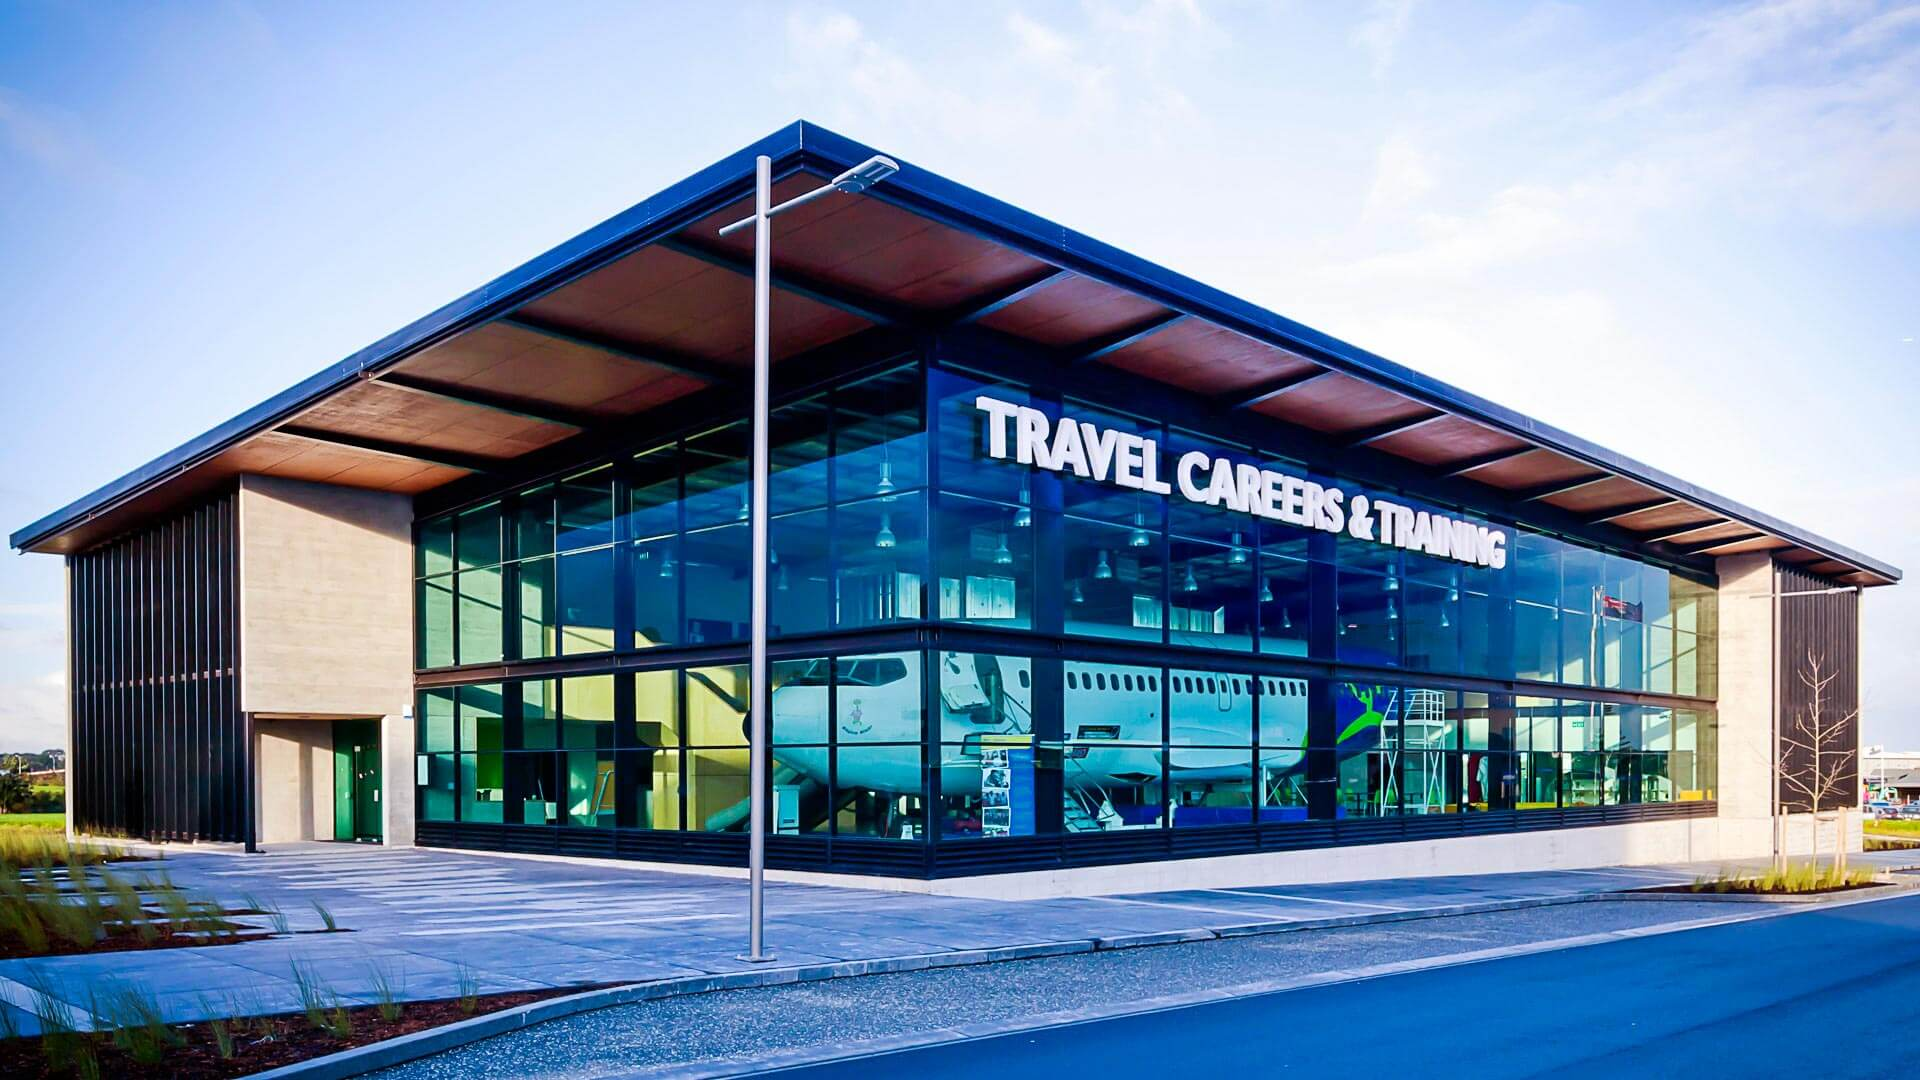 AIAL Travel, Careers and Training Centre